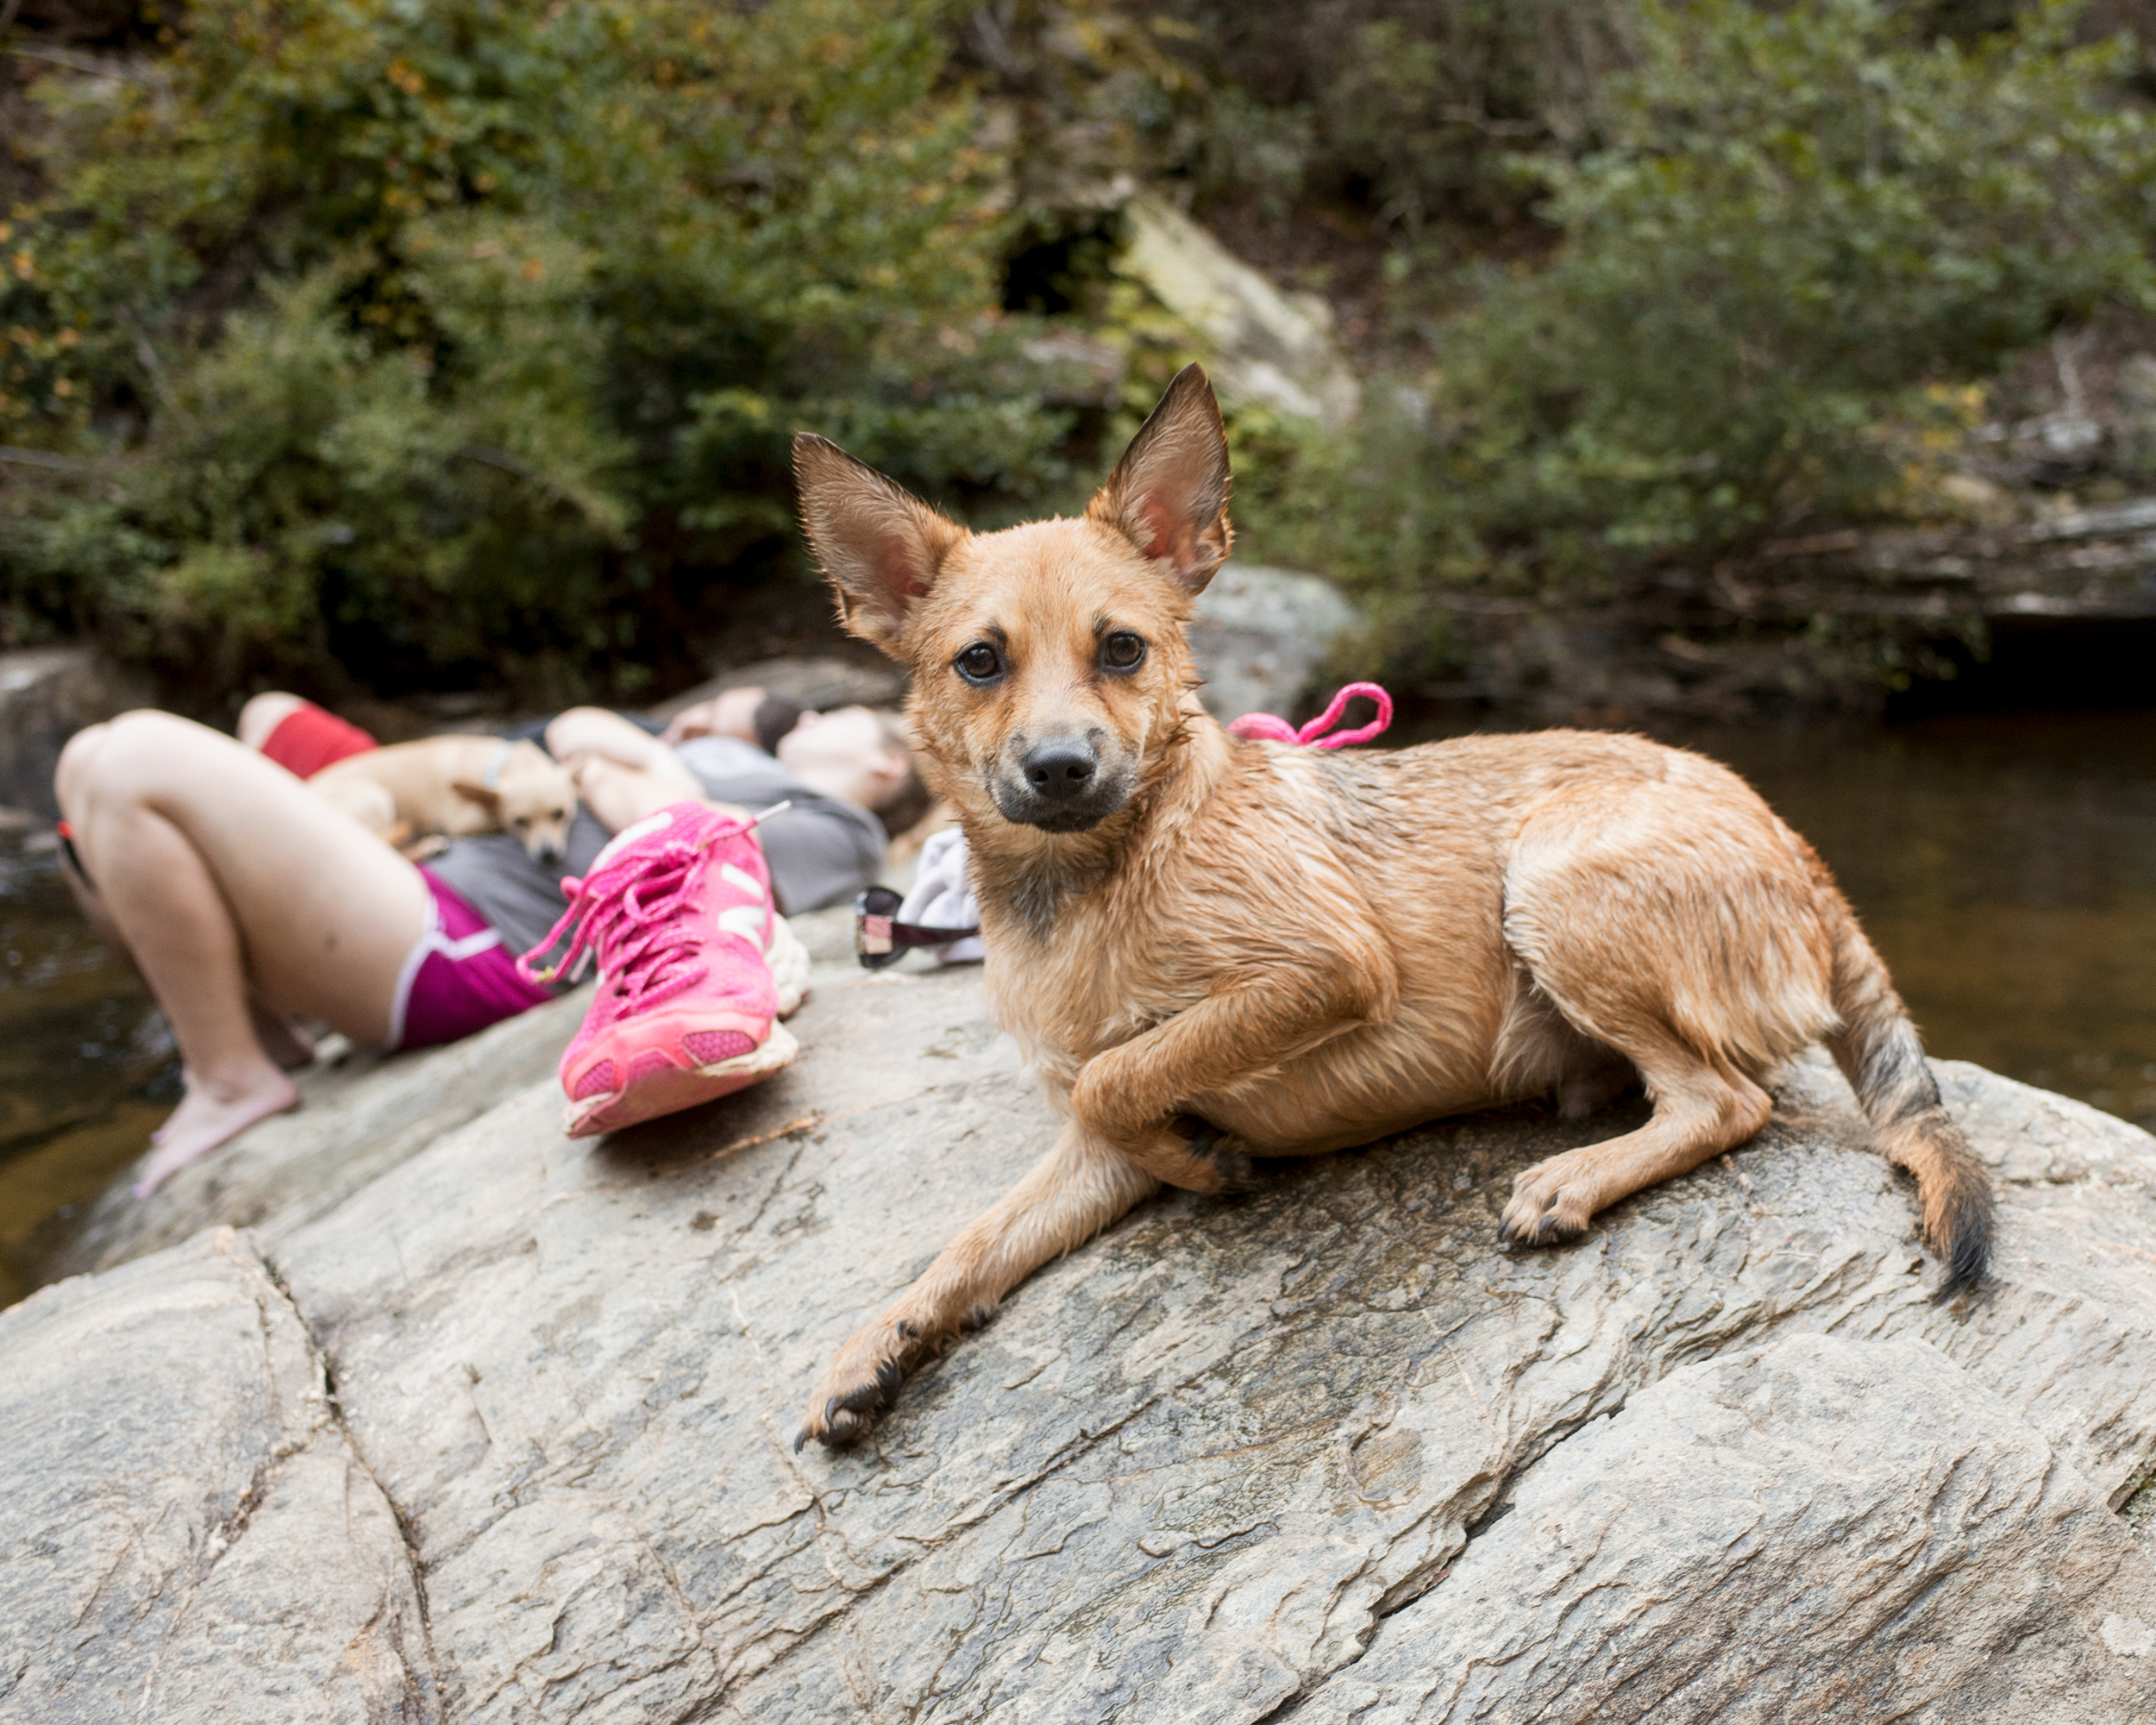 We met a pup called Benihana at the swimming hole.